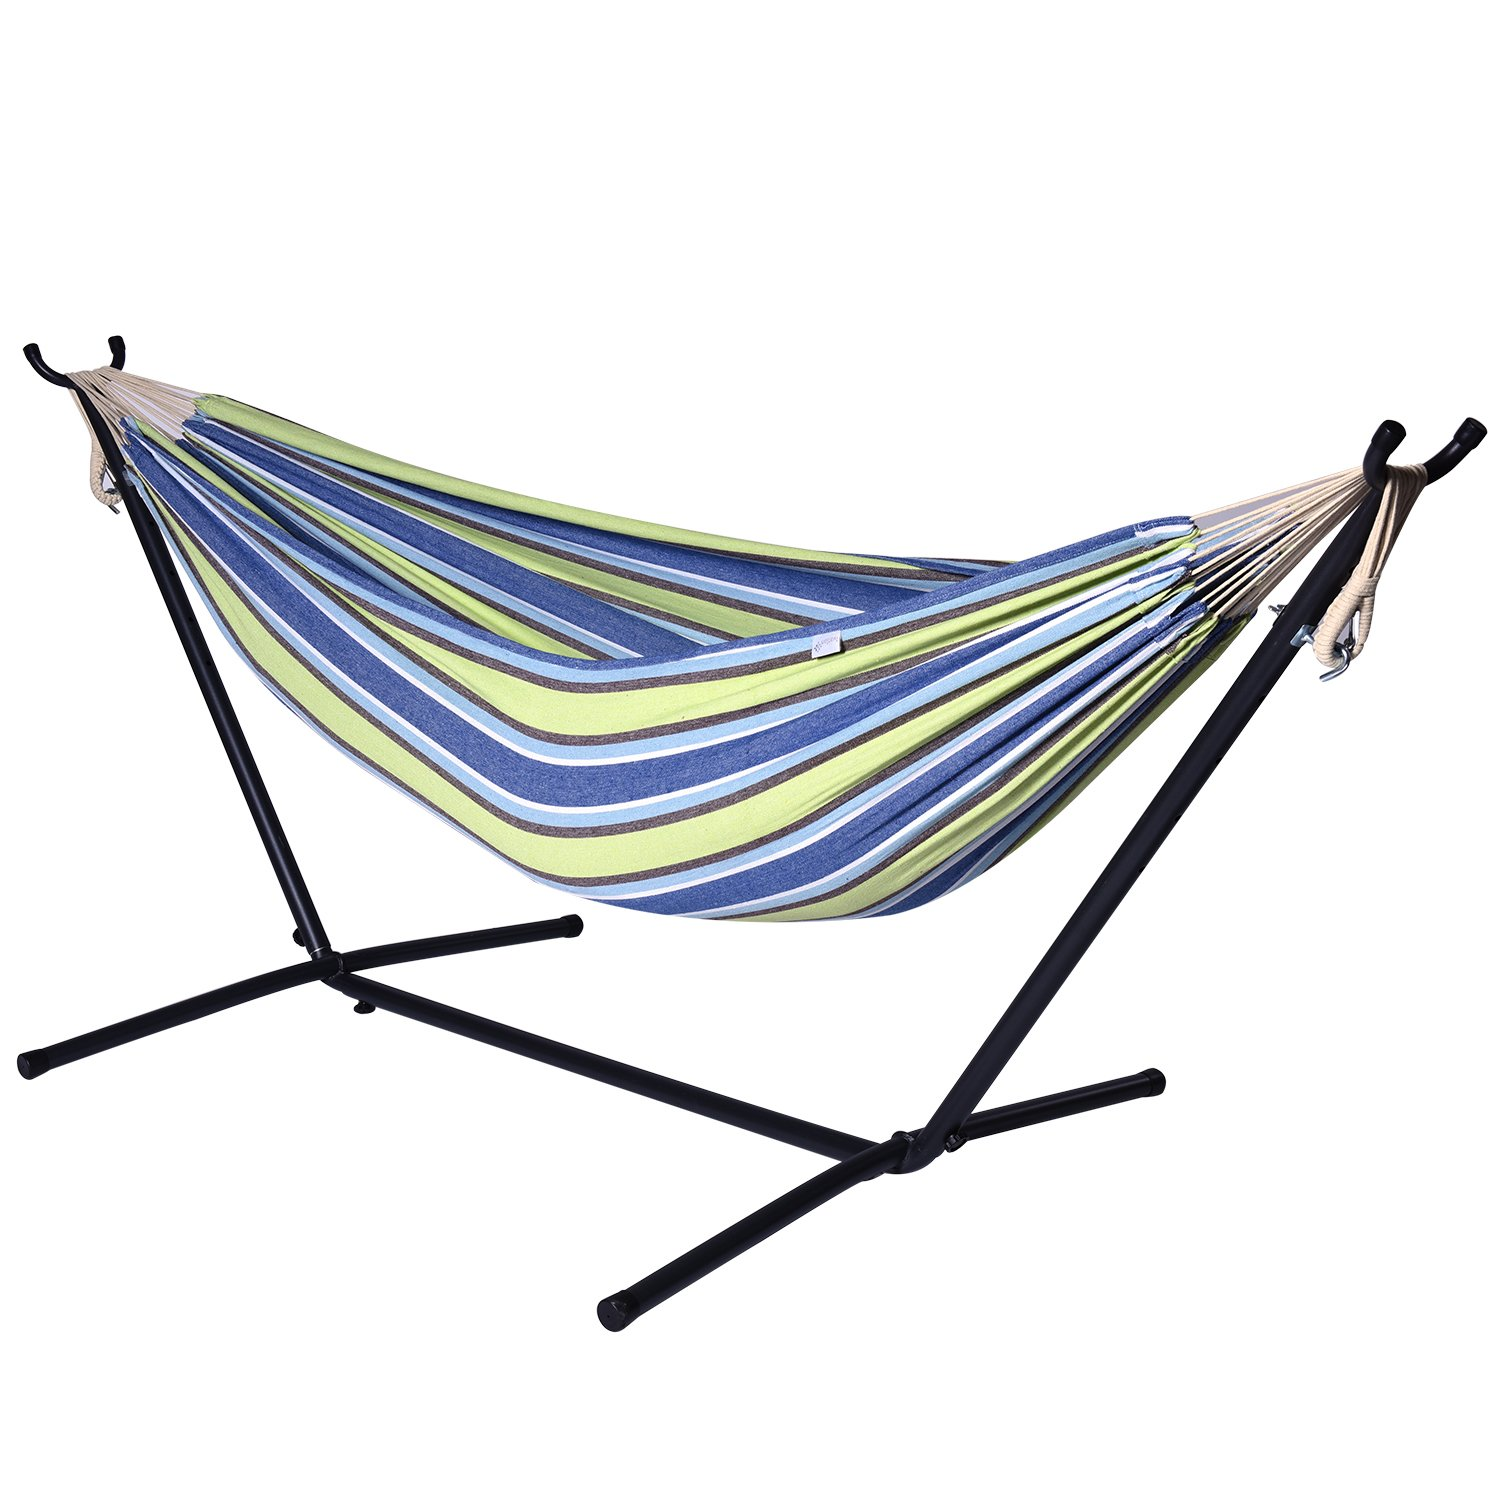 home brazilian categories patio furniture and swings single hammock in p moon hammocks style the en outdoors desert depot canada